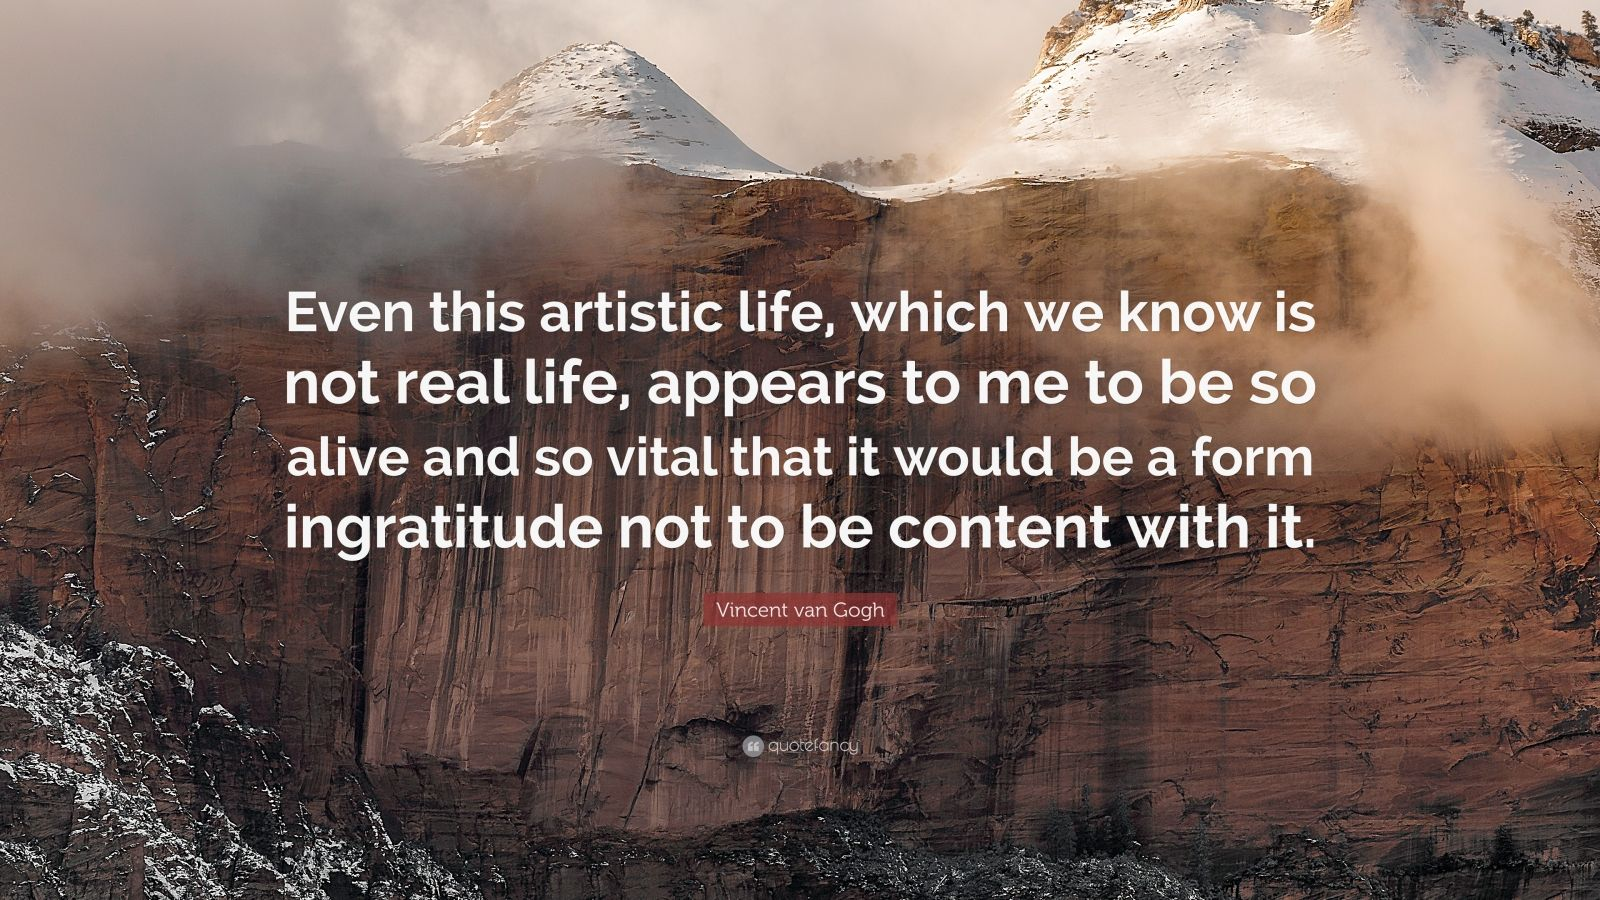 """Vincent van Gogh Quote: """"Even this artistic life, which we know is not real life, appears to me to be so alive and so vital that it would be a form ingratitude not to be content with it."""""""